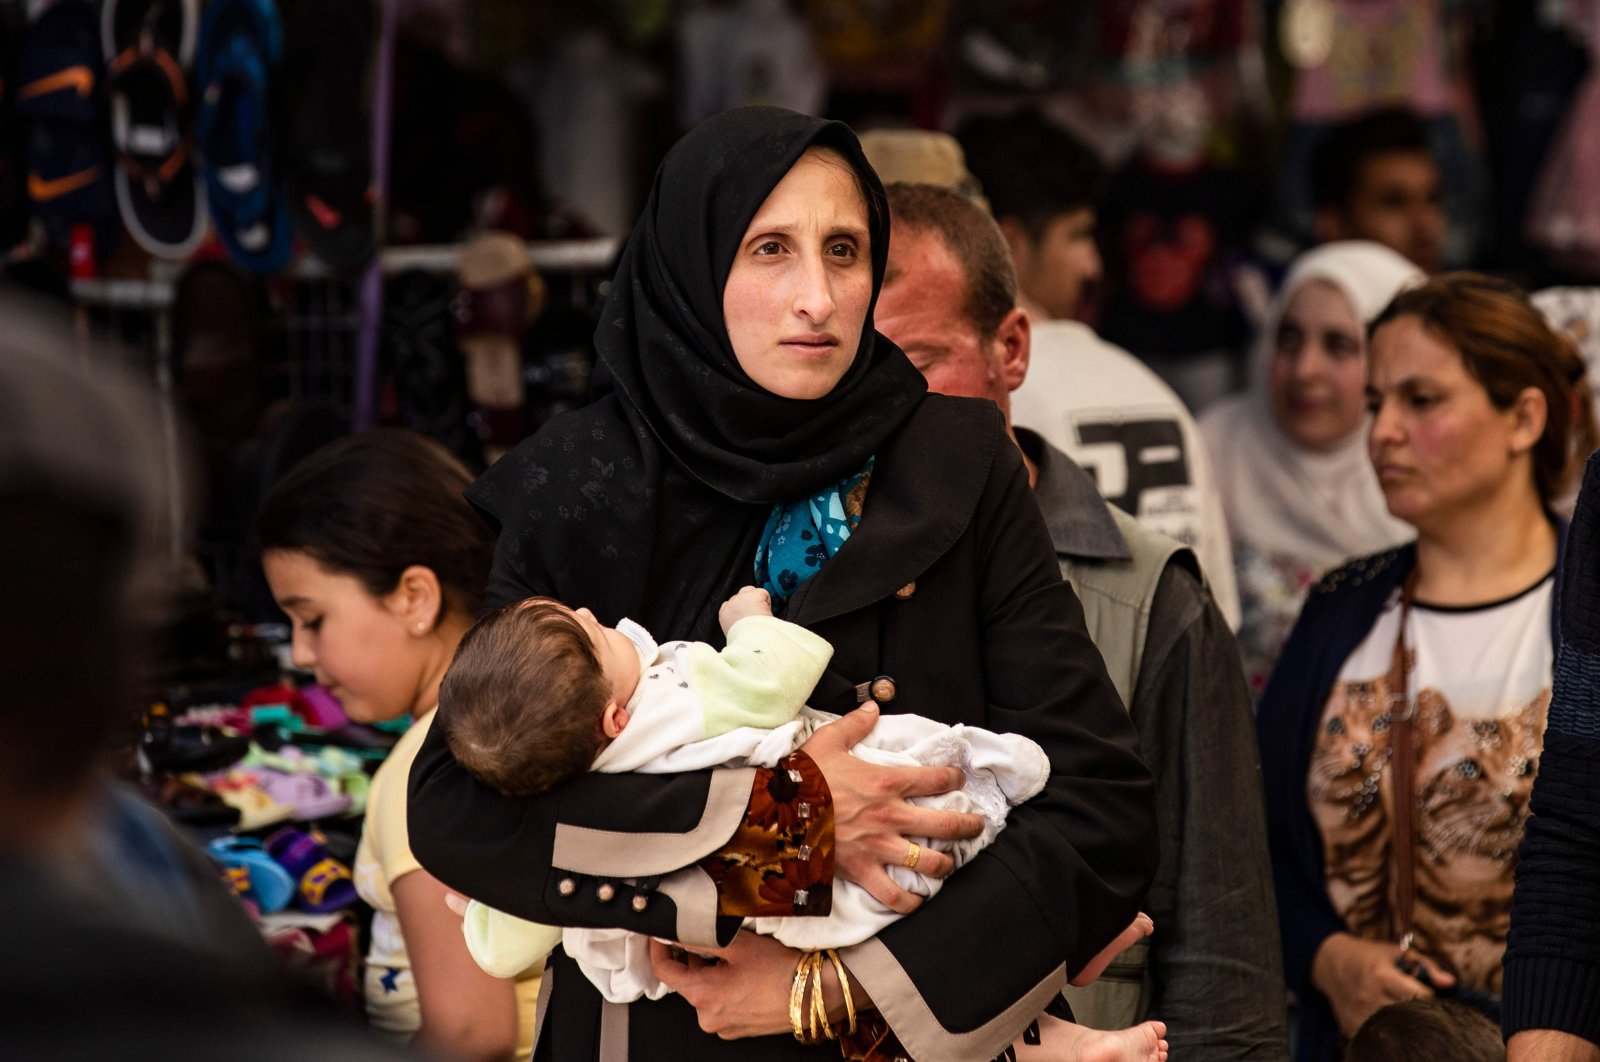 A woman walks with a baby at the main market of the city of Qamishli in Syria's northeastern Hasakah province, May 12, 2020. (AFP Photo)